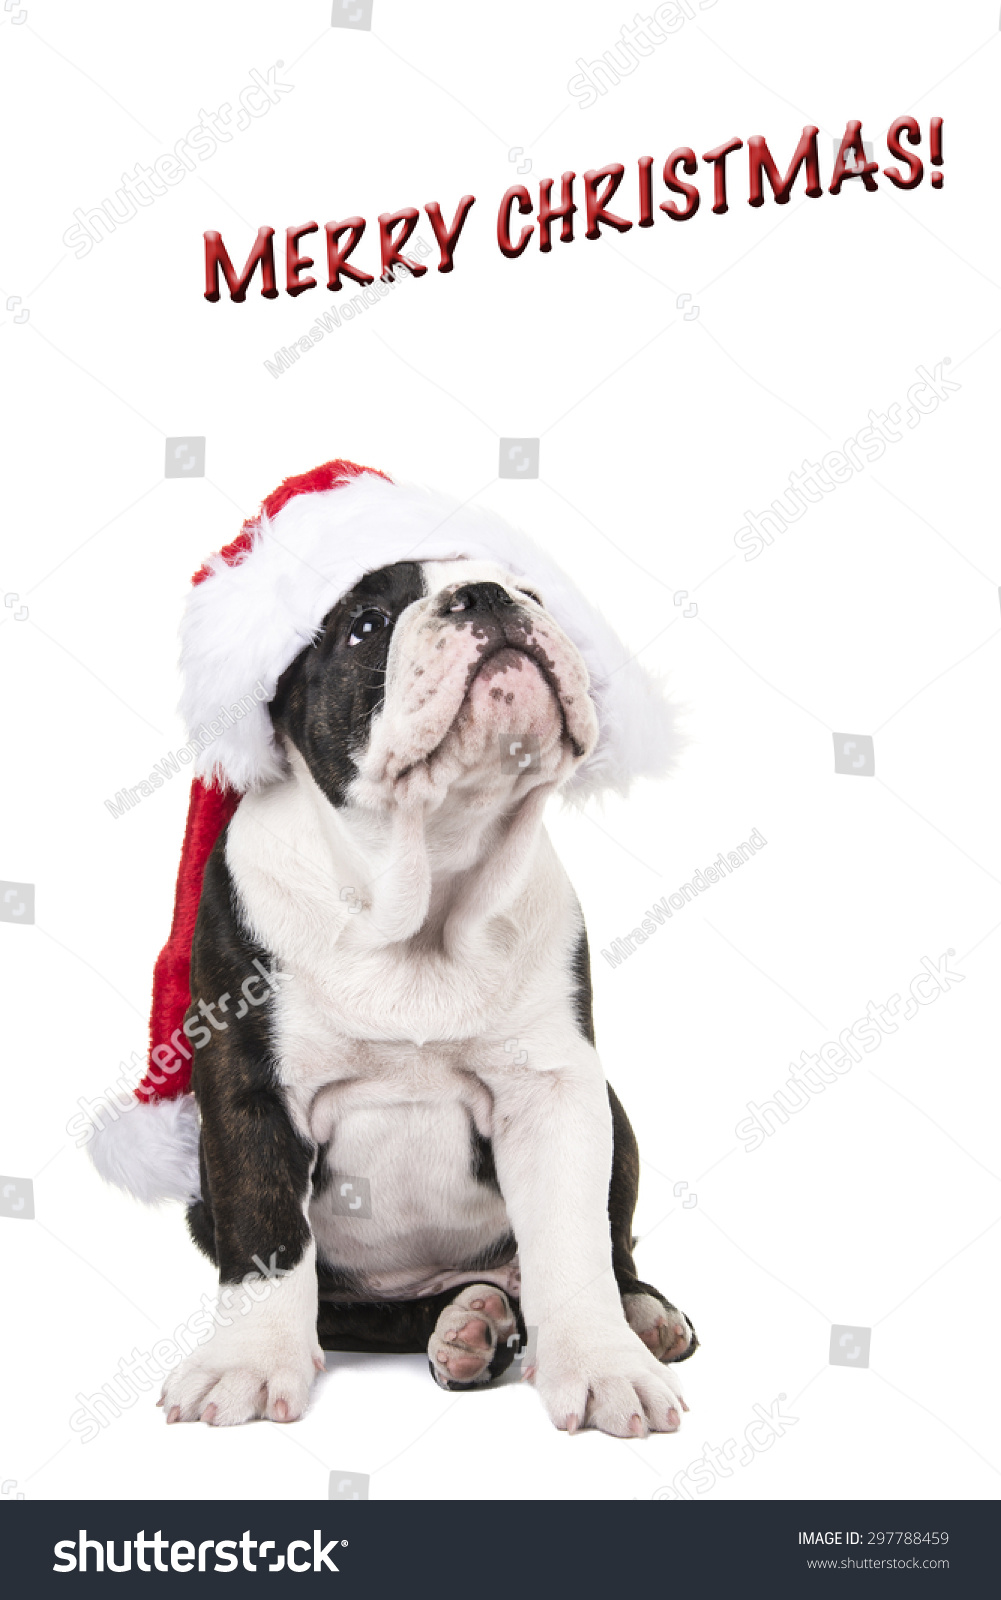 Christmas Card English Bulldog Puppy Wearing Stock Photo (Edit Now ...